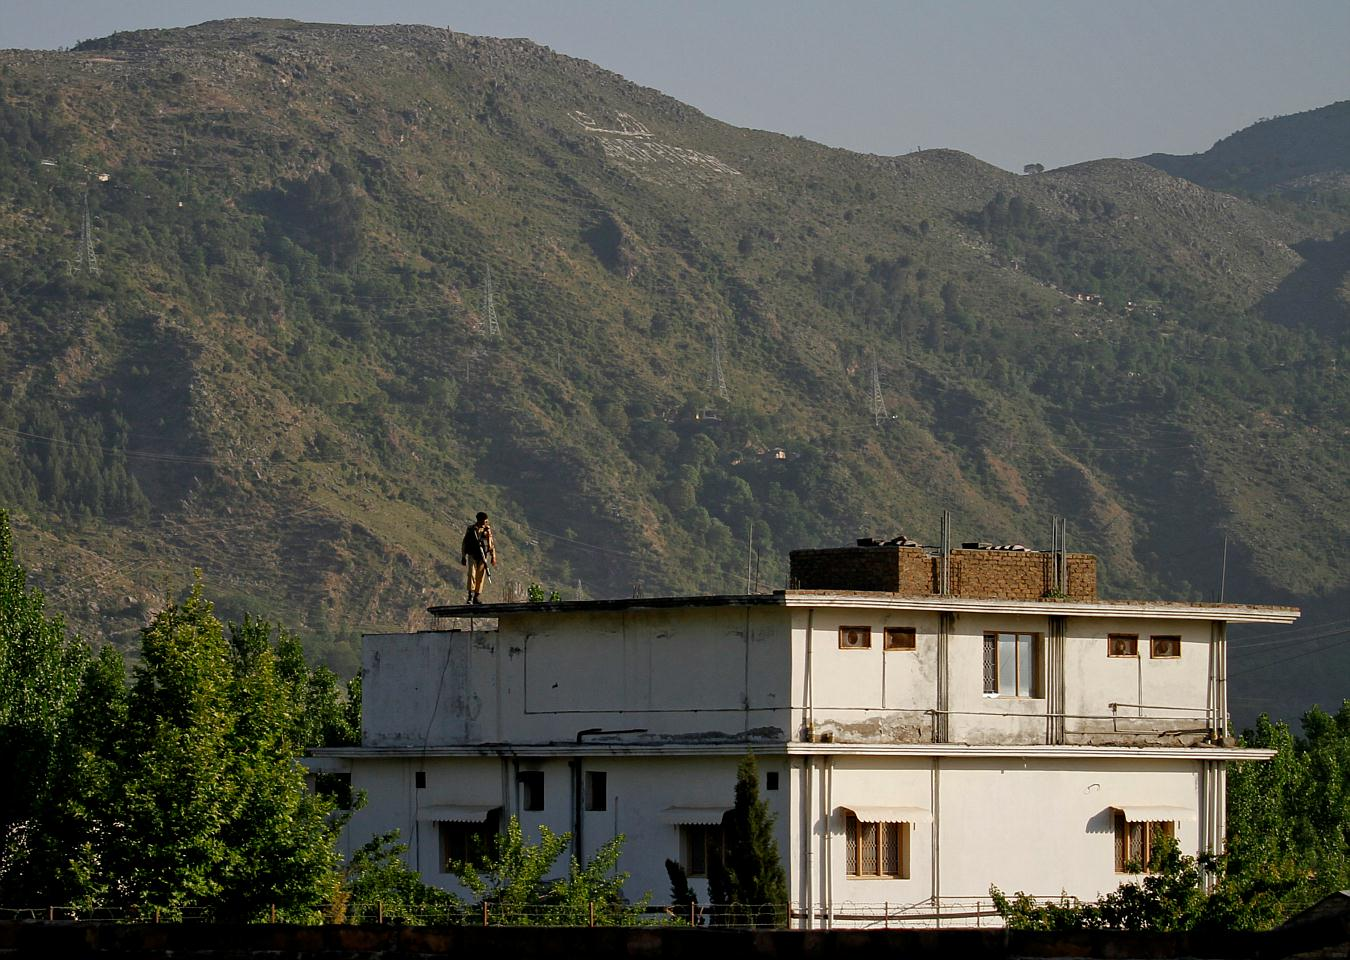 Image A Pakistani army soldier stands on the roof of the compound in Abbottabad, Monday, May 2, 2011. (AP Photo/Anjum Naveed)